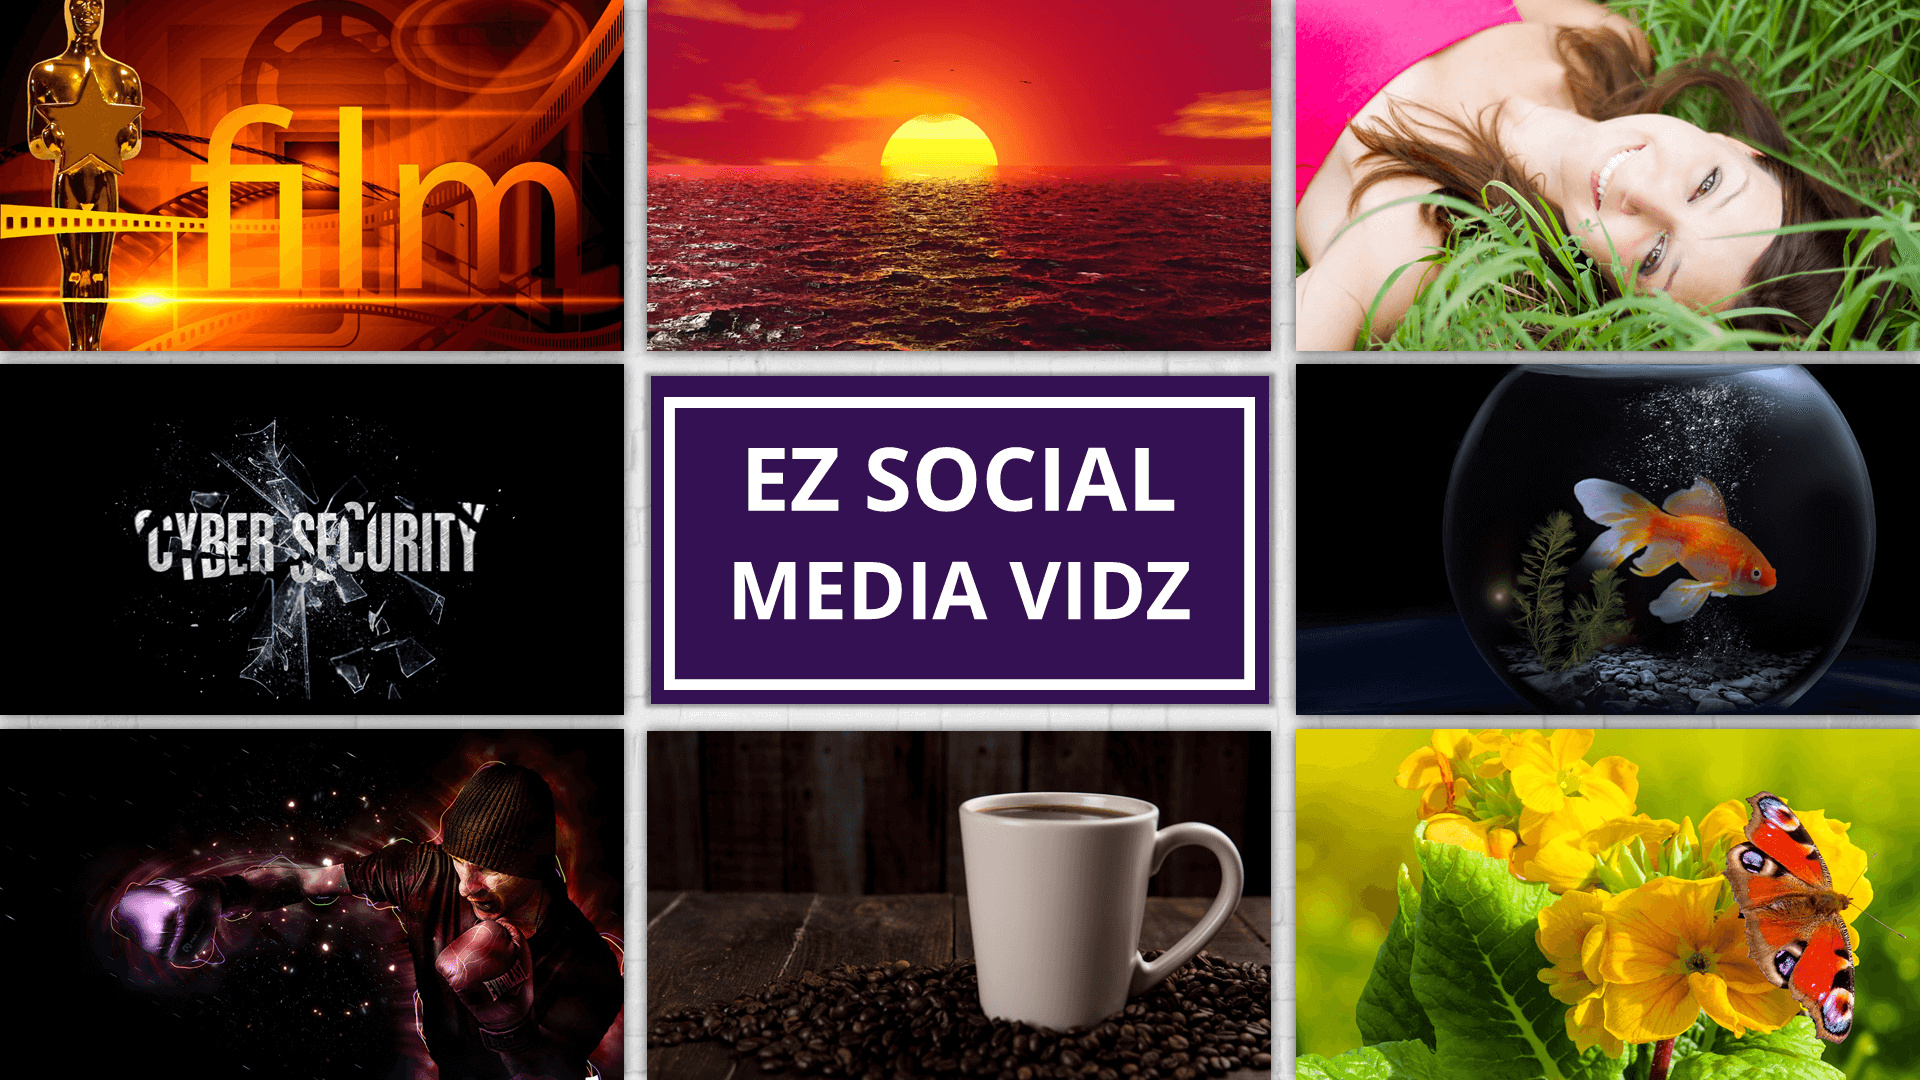 EZ_SocialMedia_Vids_Display5